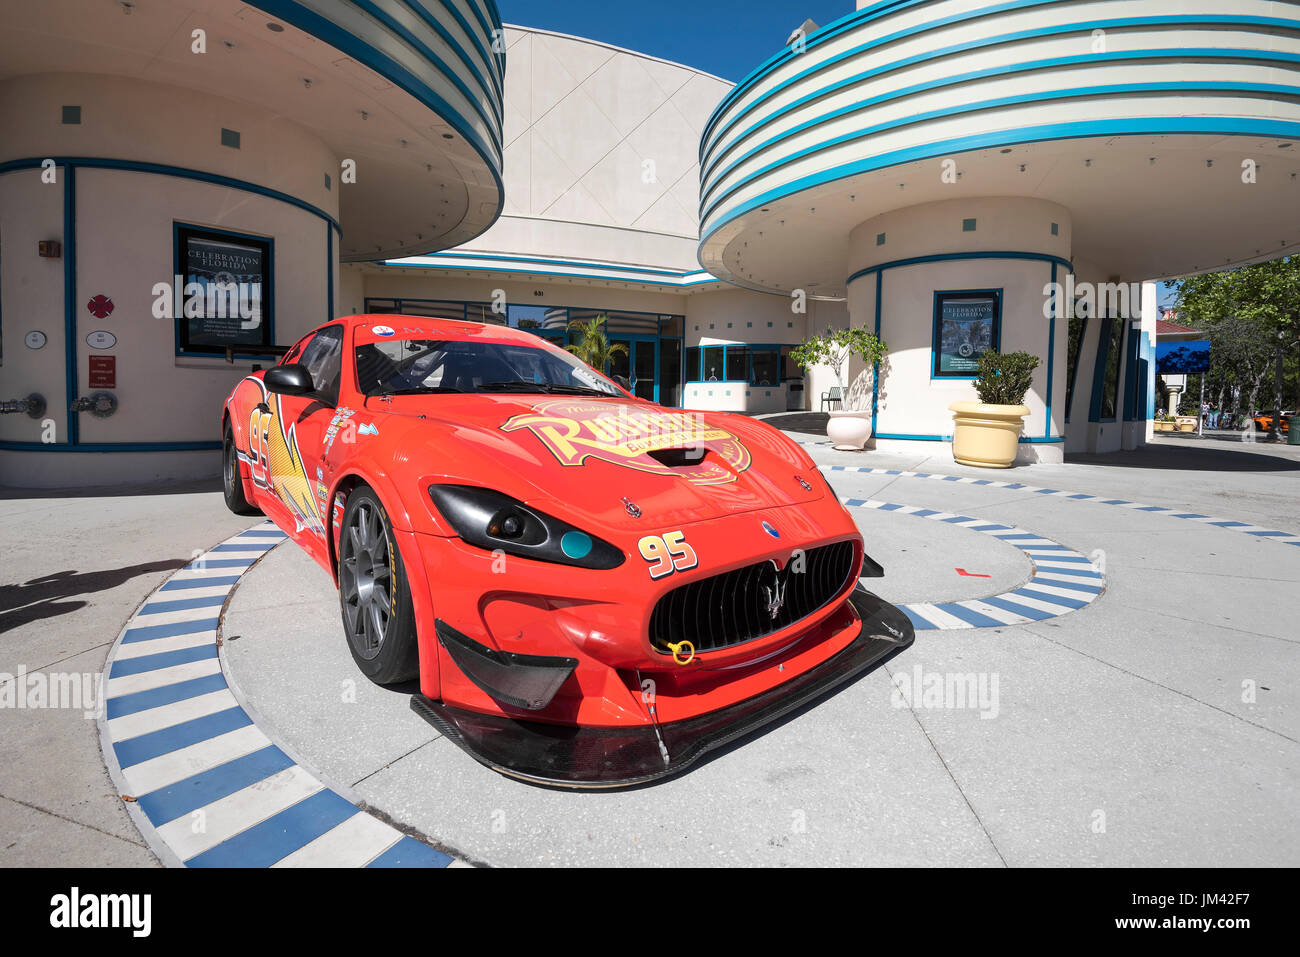 Maserati classic car parked at Cinema during the Celebration (Florida) annual Classic Car Show. - Stock Image